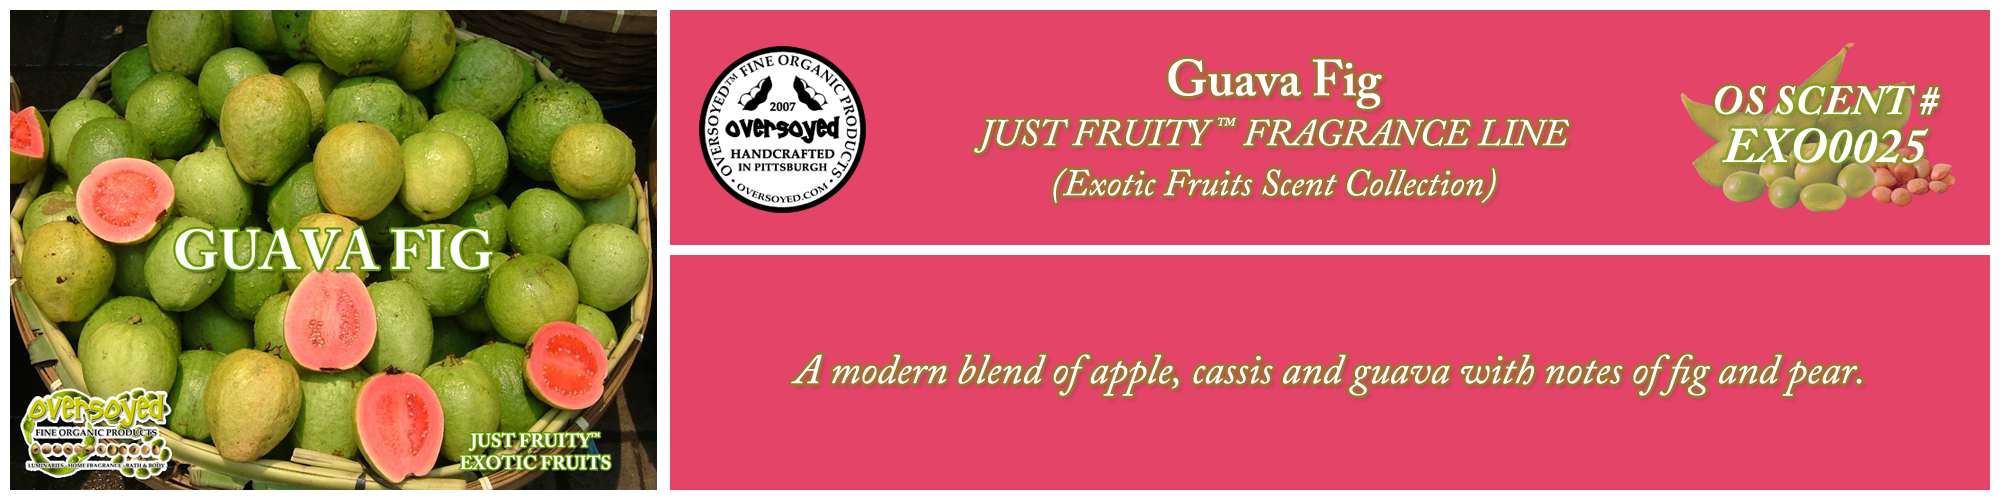 Guava Fig Handcrafted Products Collection